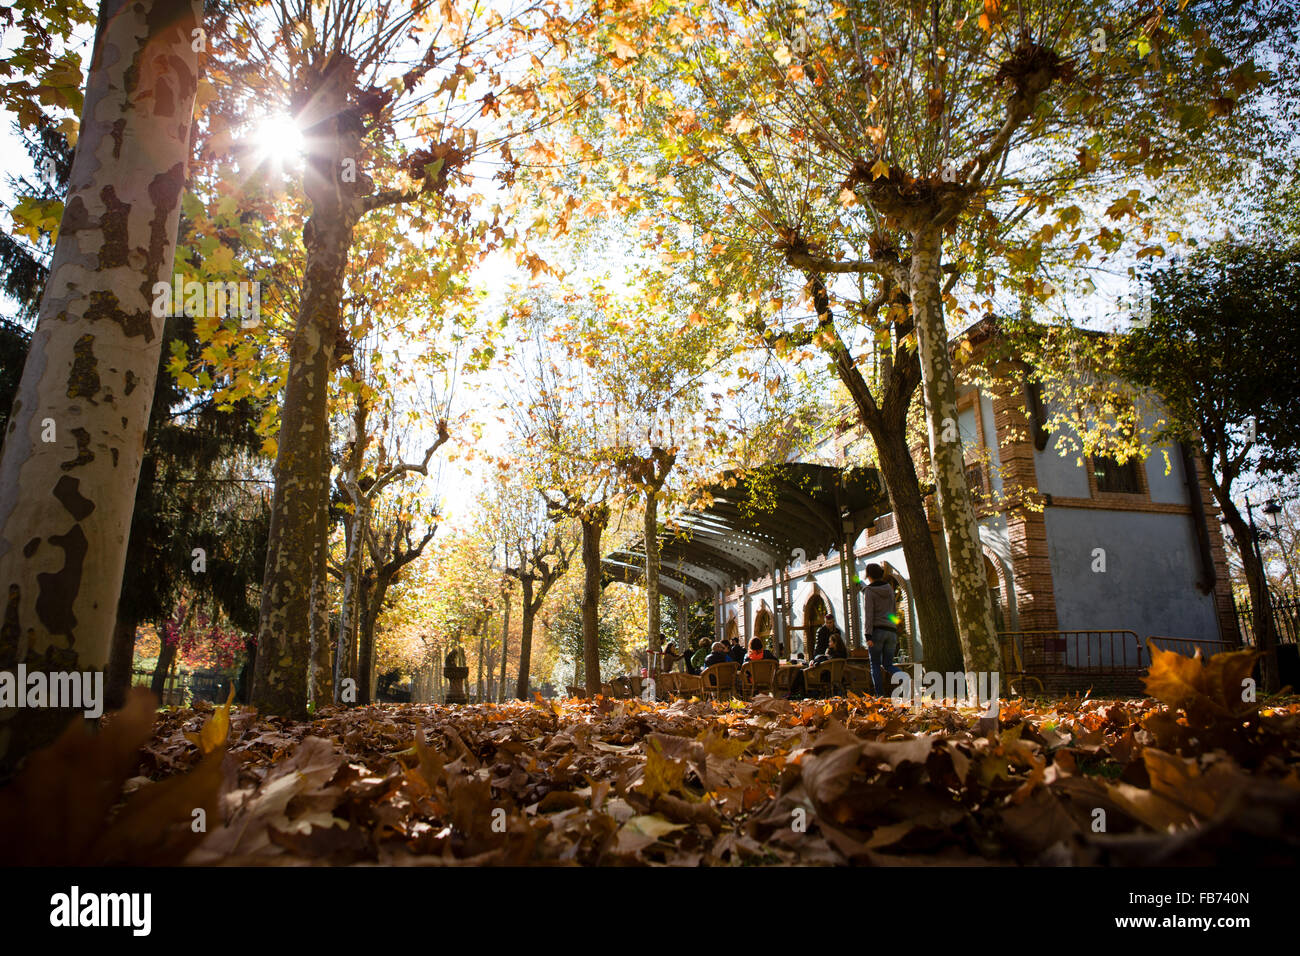 31/10/15 Autumnal leaves at old railway station now Estacion bar / restaurant, Ezcaray, La Rioja, Spain. Photo by - Stock Image